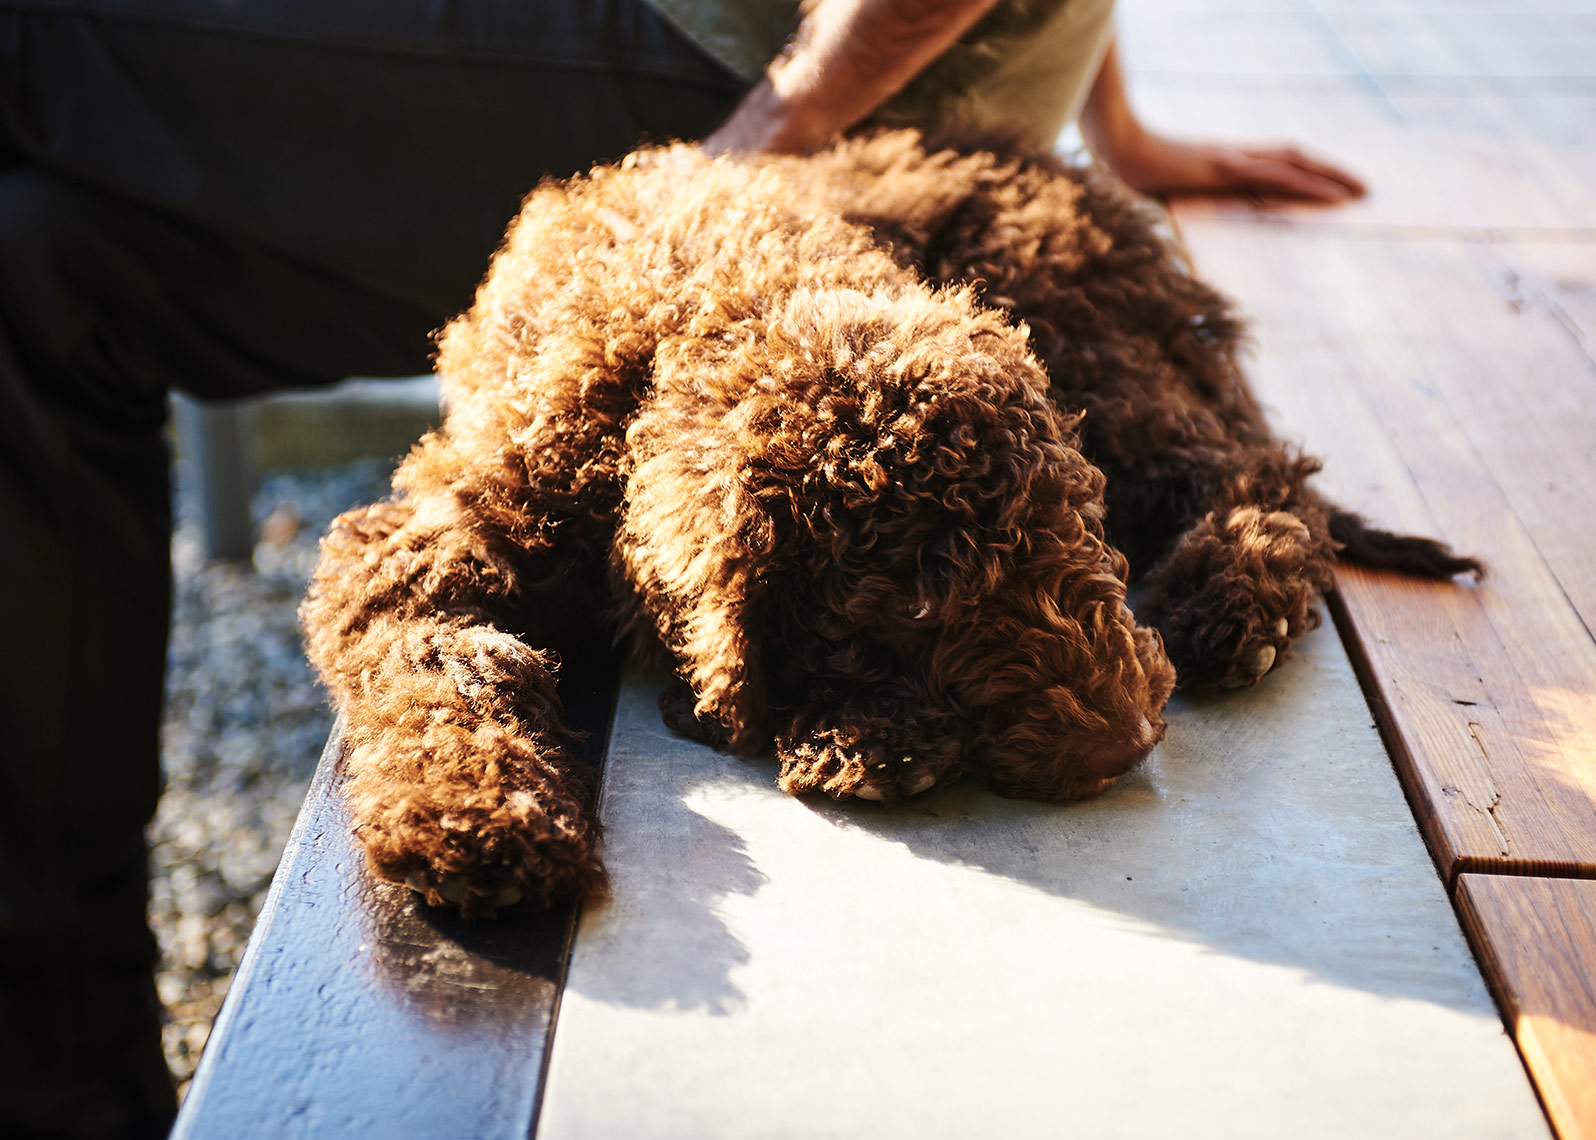 detail of a dog soaking in the rays during photoshoot